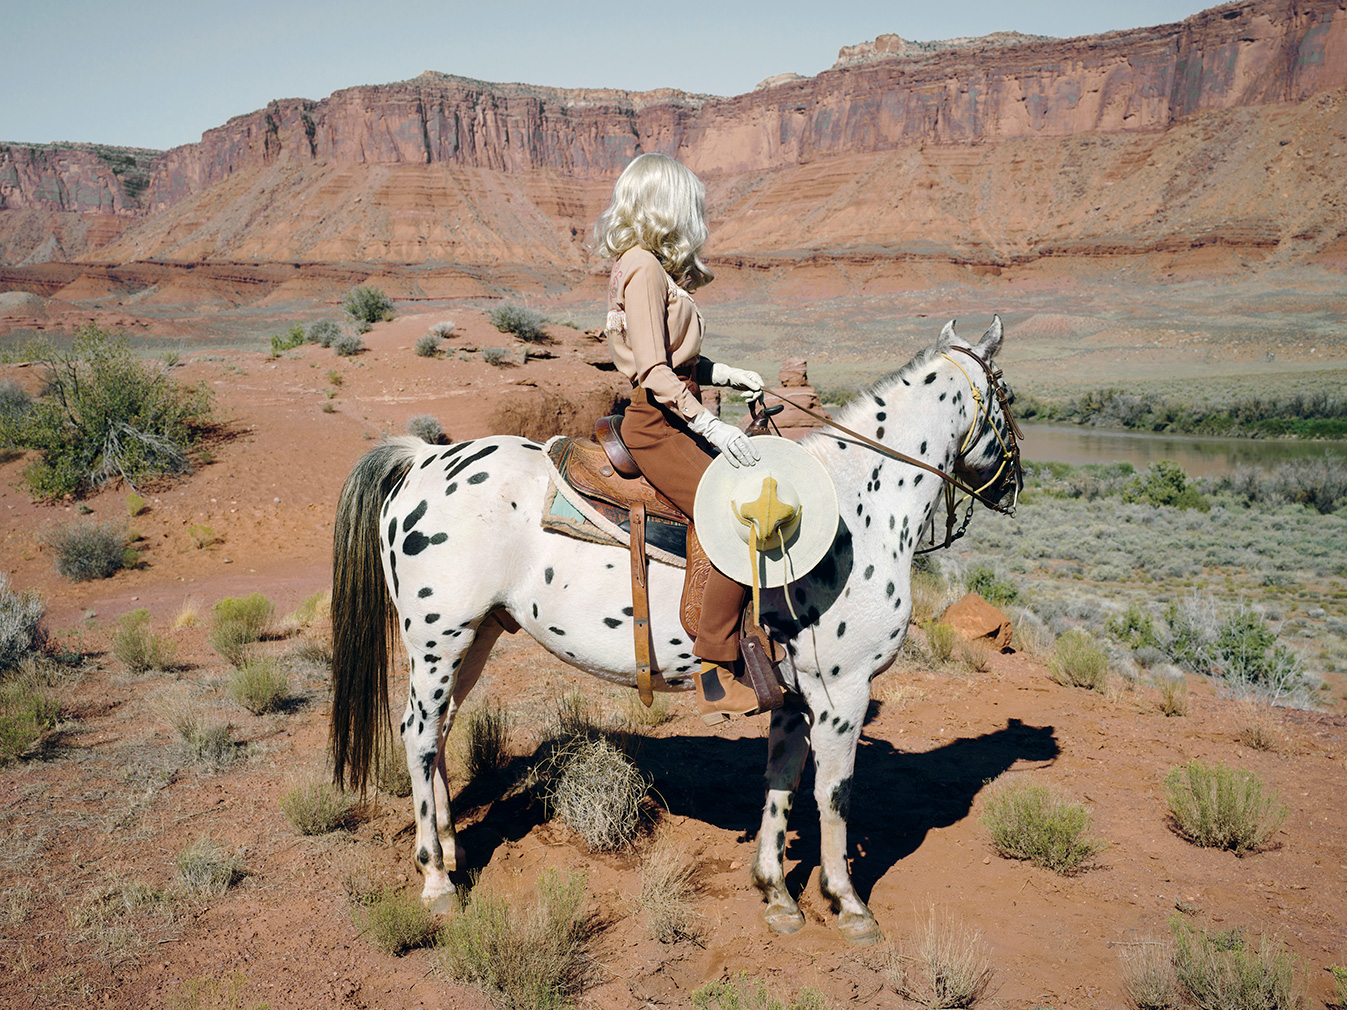 'The Imaginary Cowboy'. Photography: Anja Niemi (c) 2019